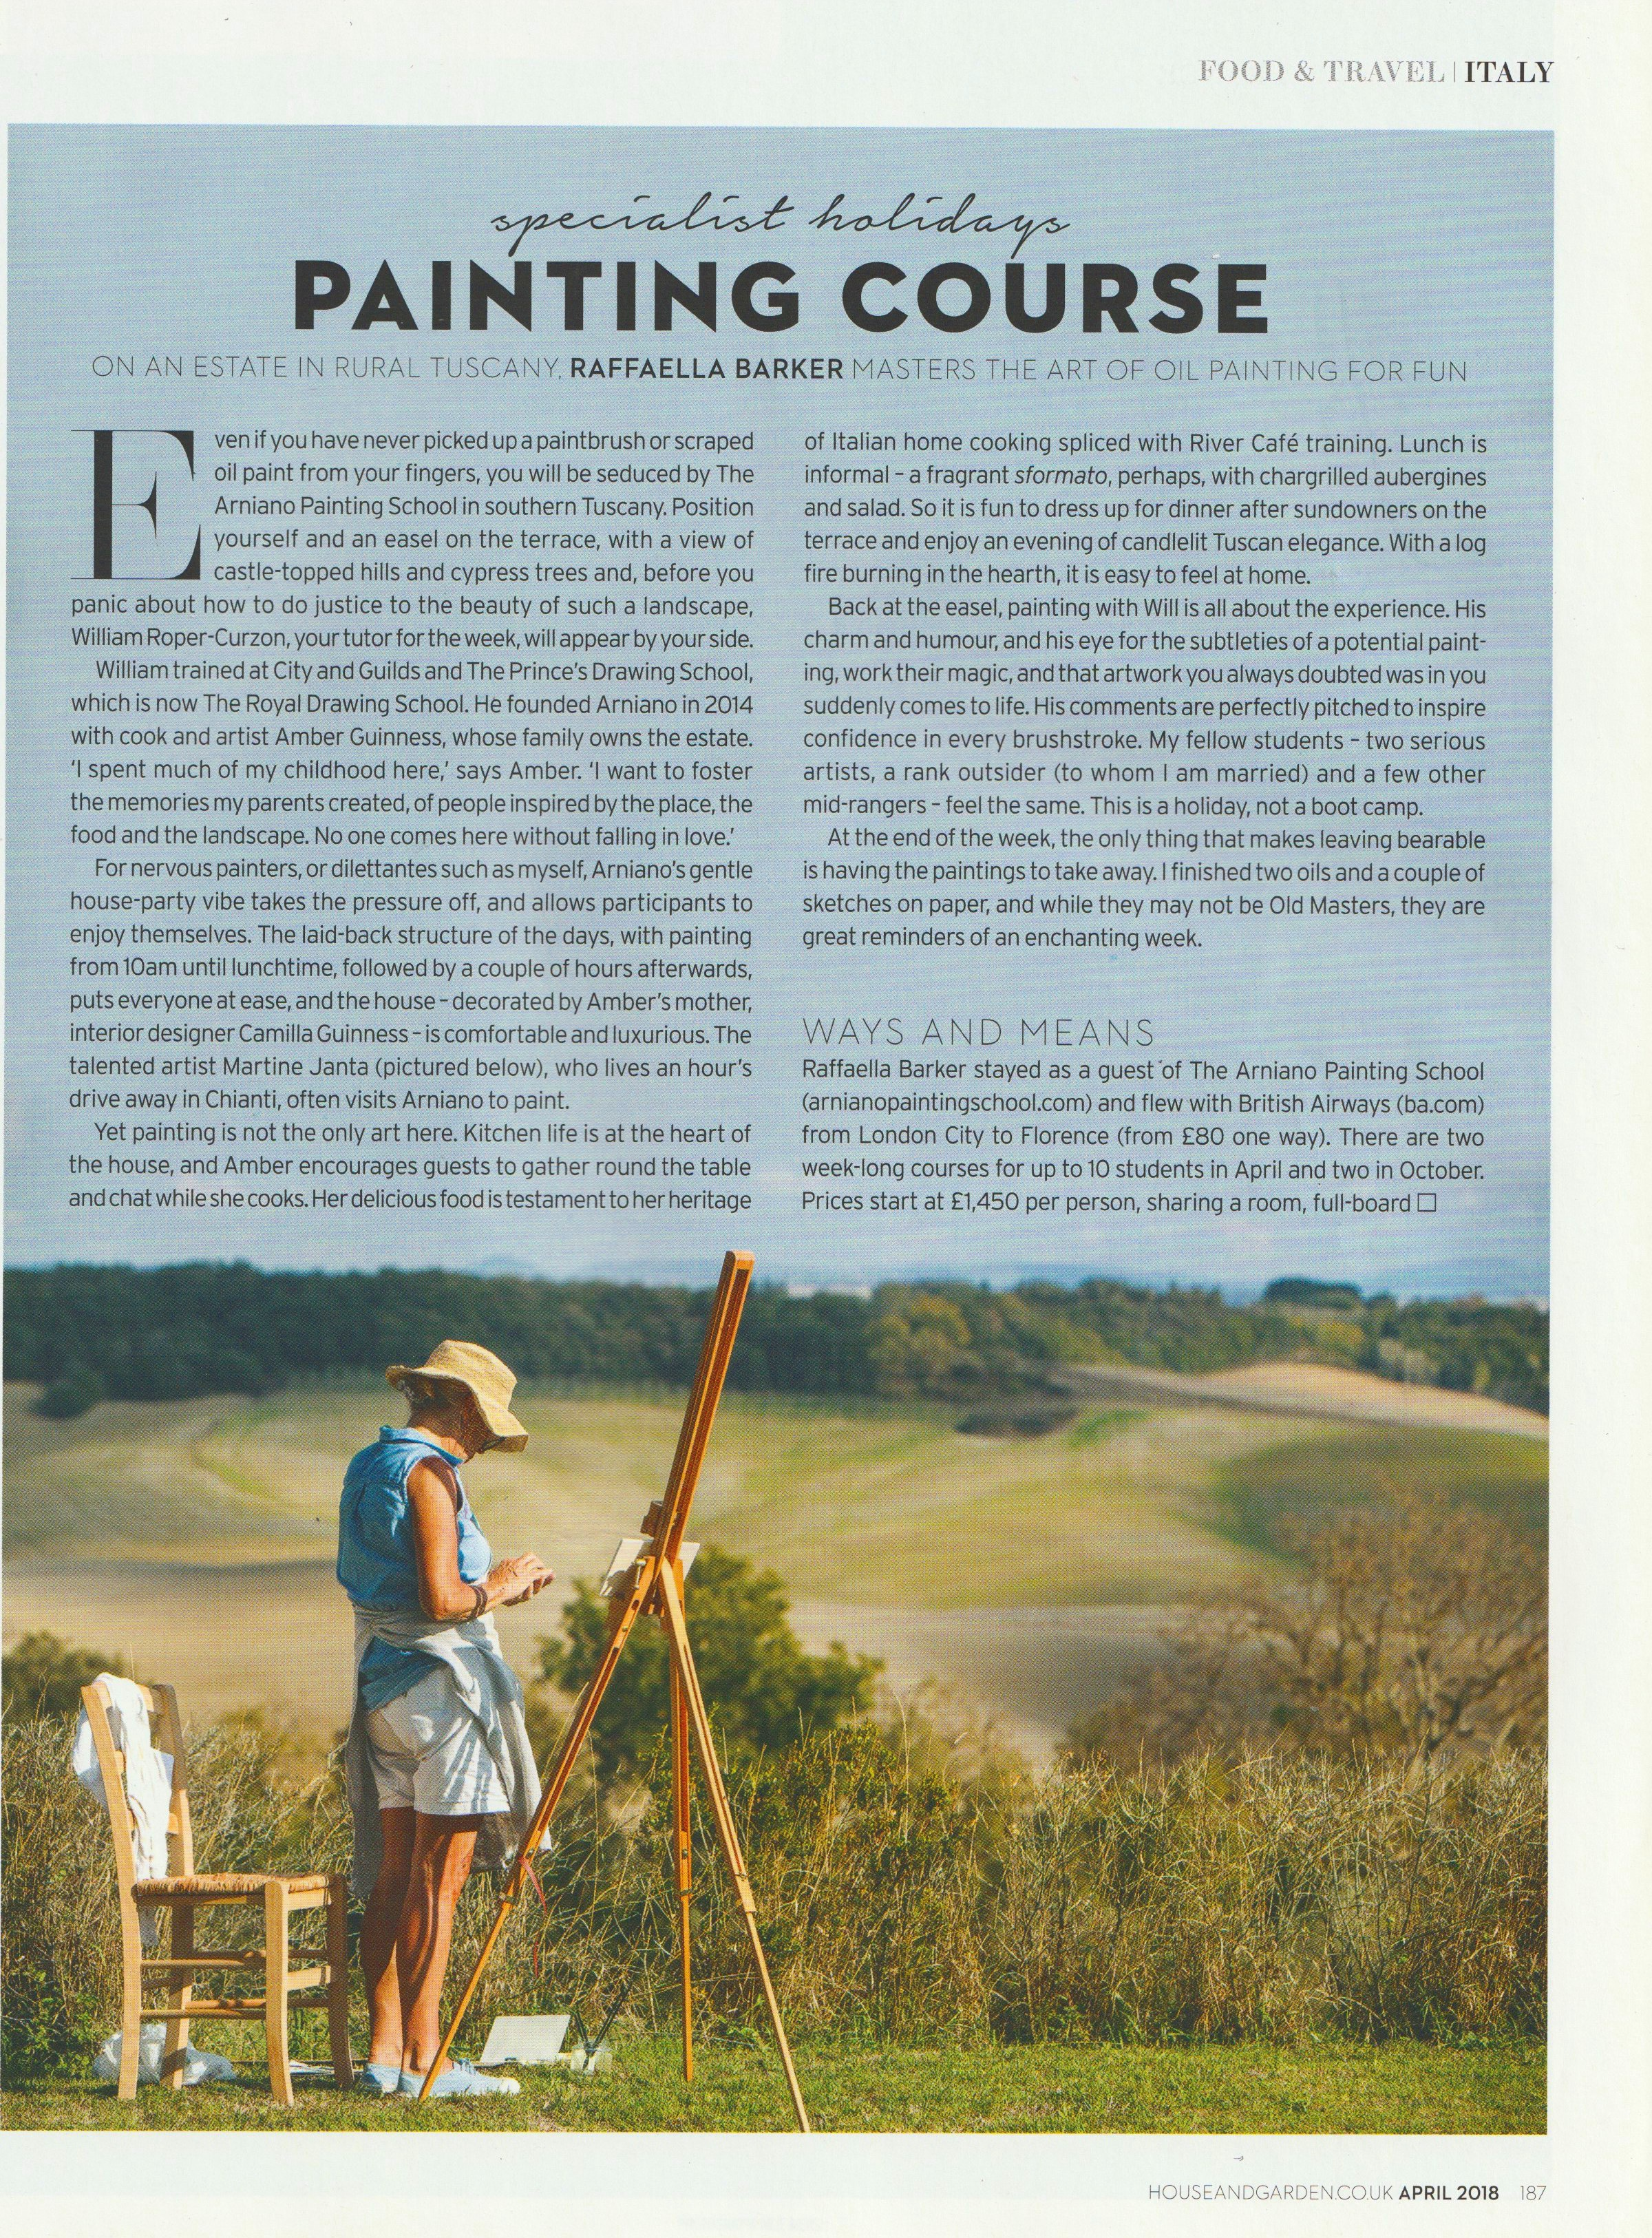 Raffaella Barker's review of The Arniano Painting School appeared in the April 2018 issue of House & Garden